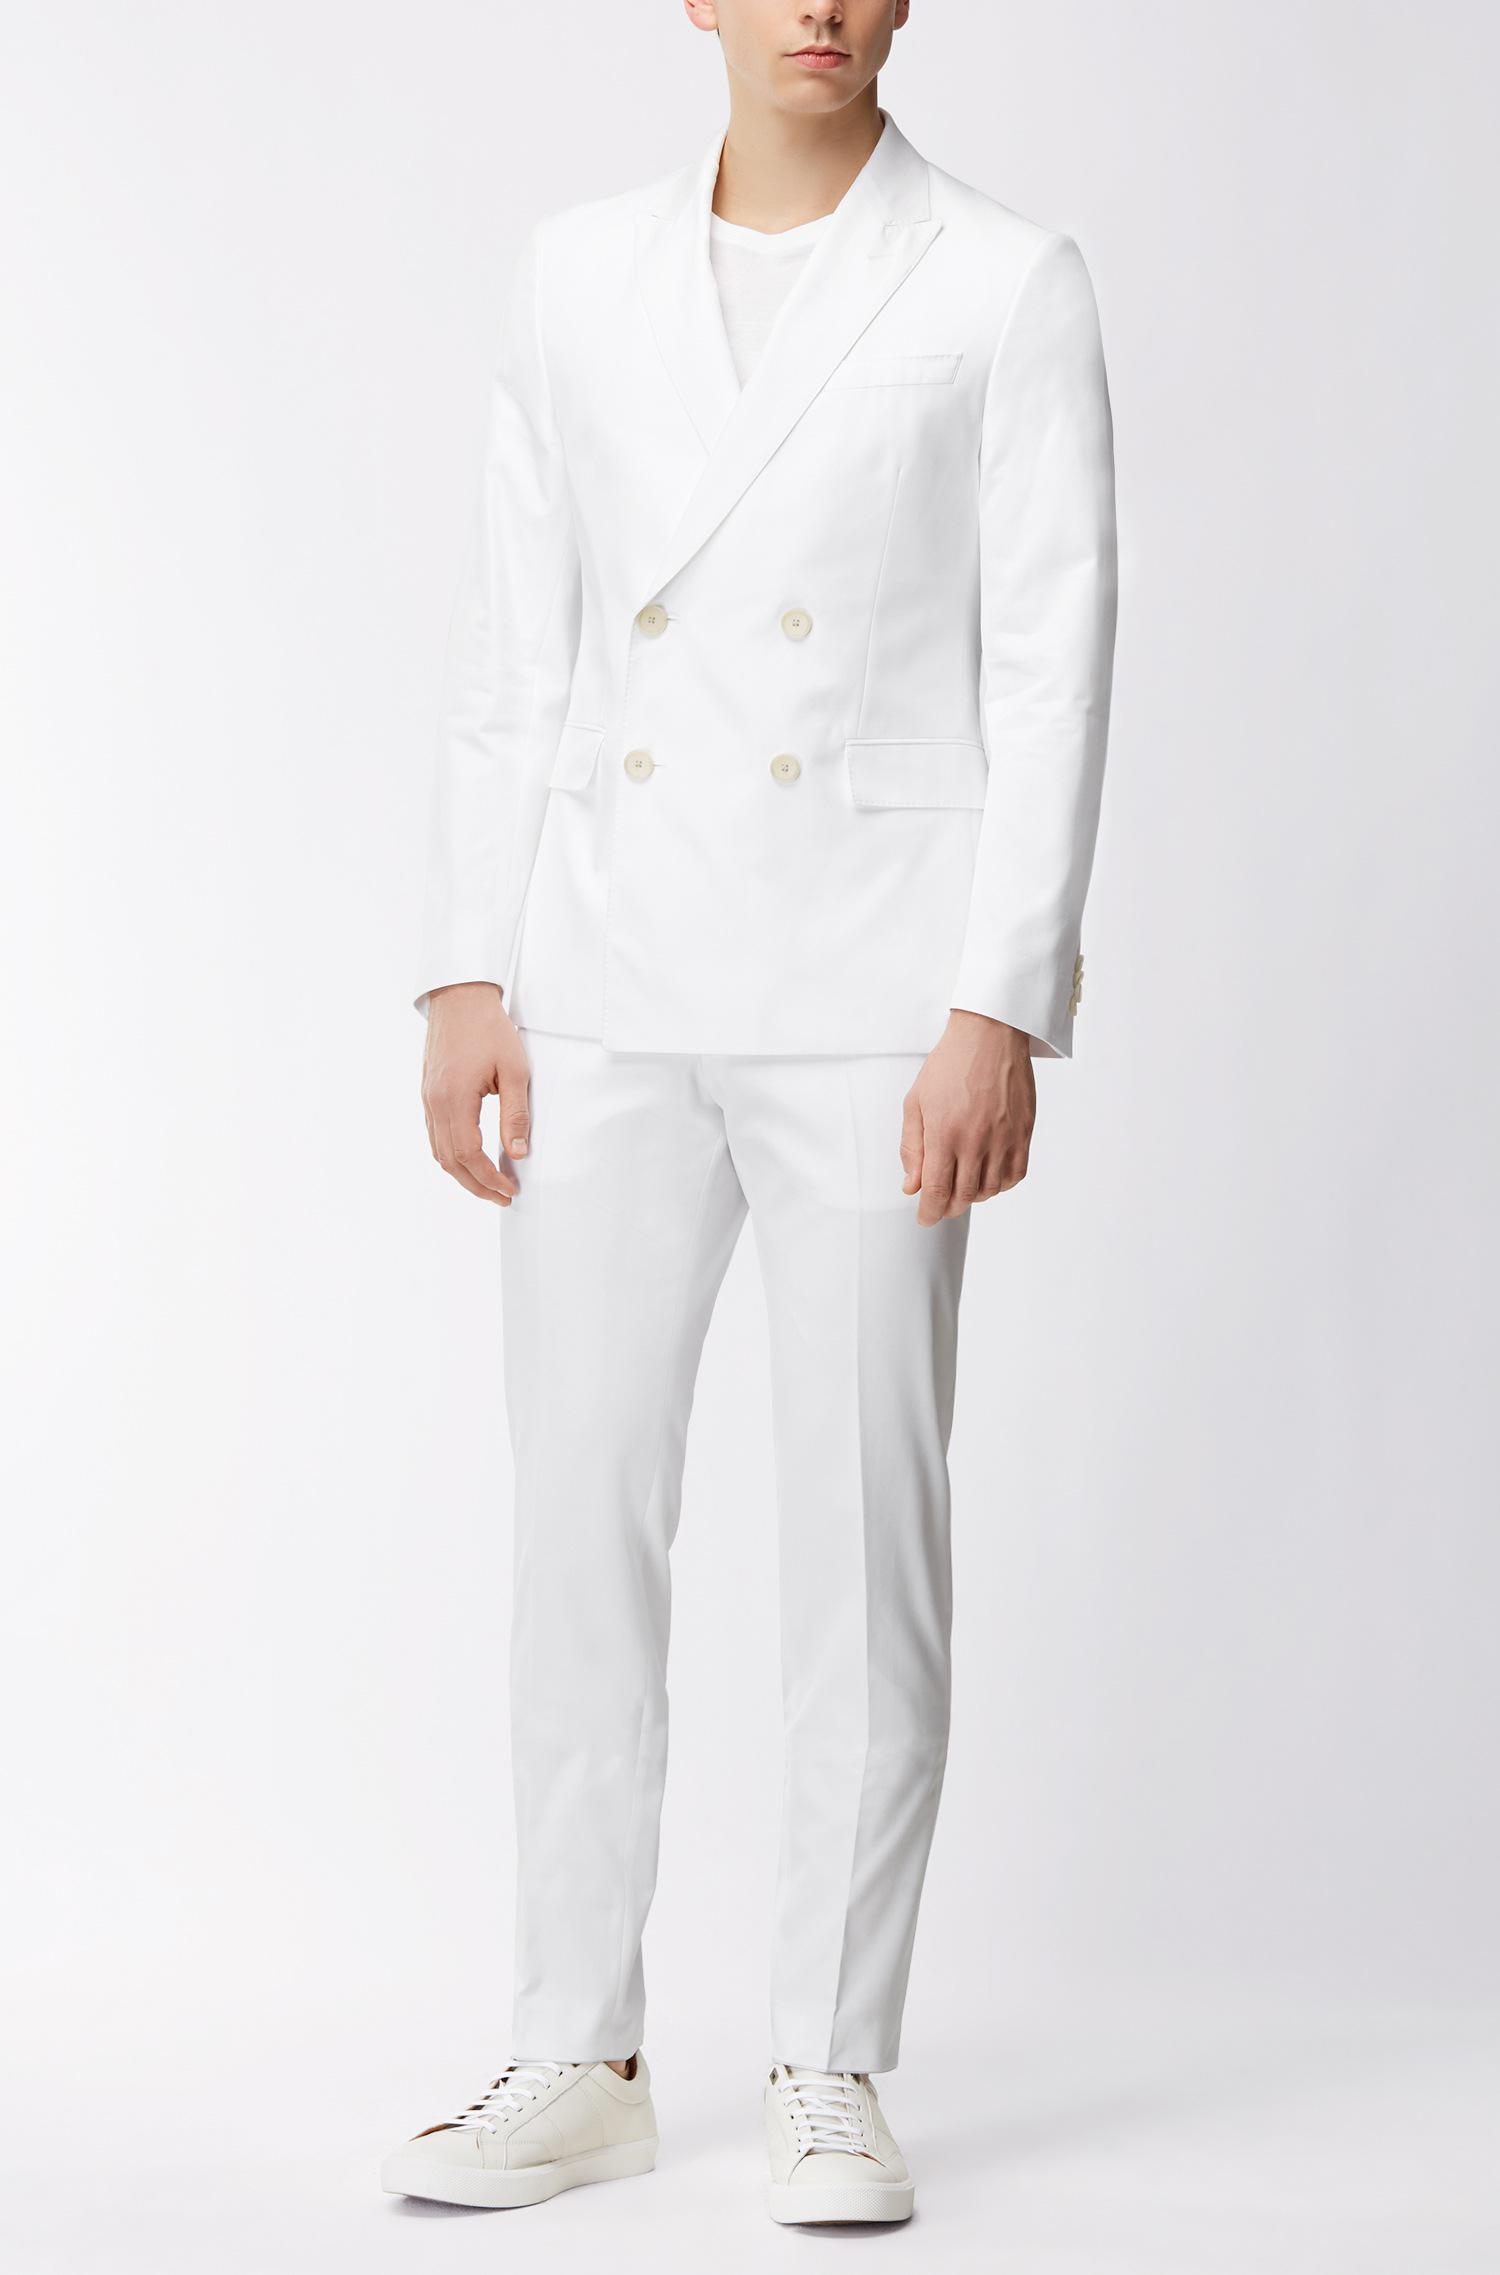 76dbb6c85 BOSS Italian Cotton Double-breasted Suit, Slim Fit | Nami/ben in ...